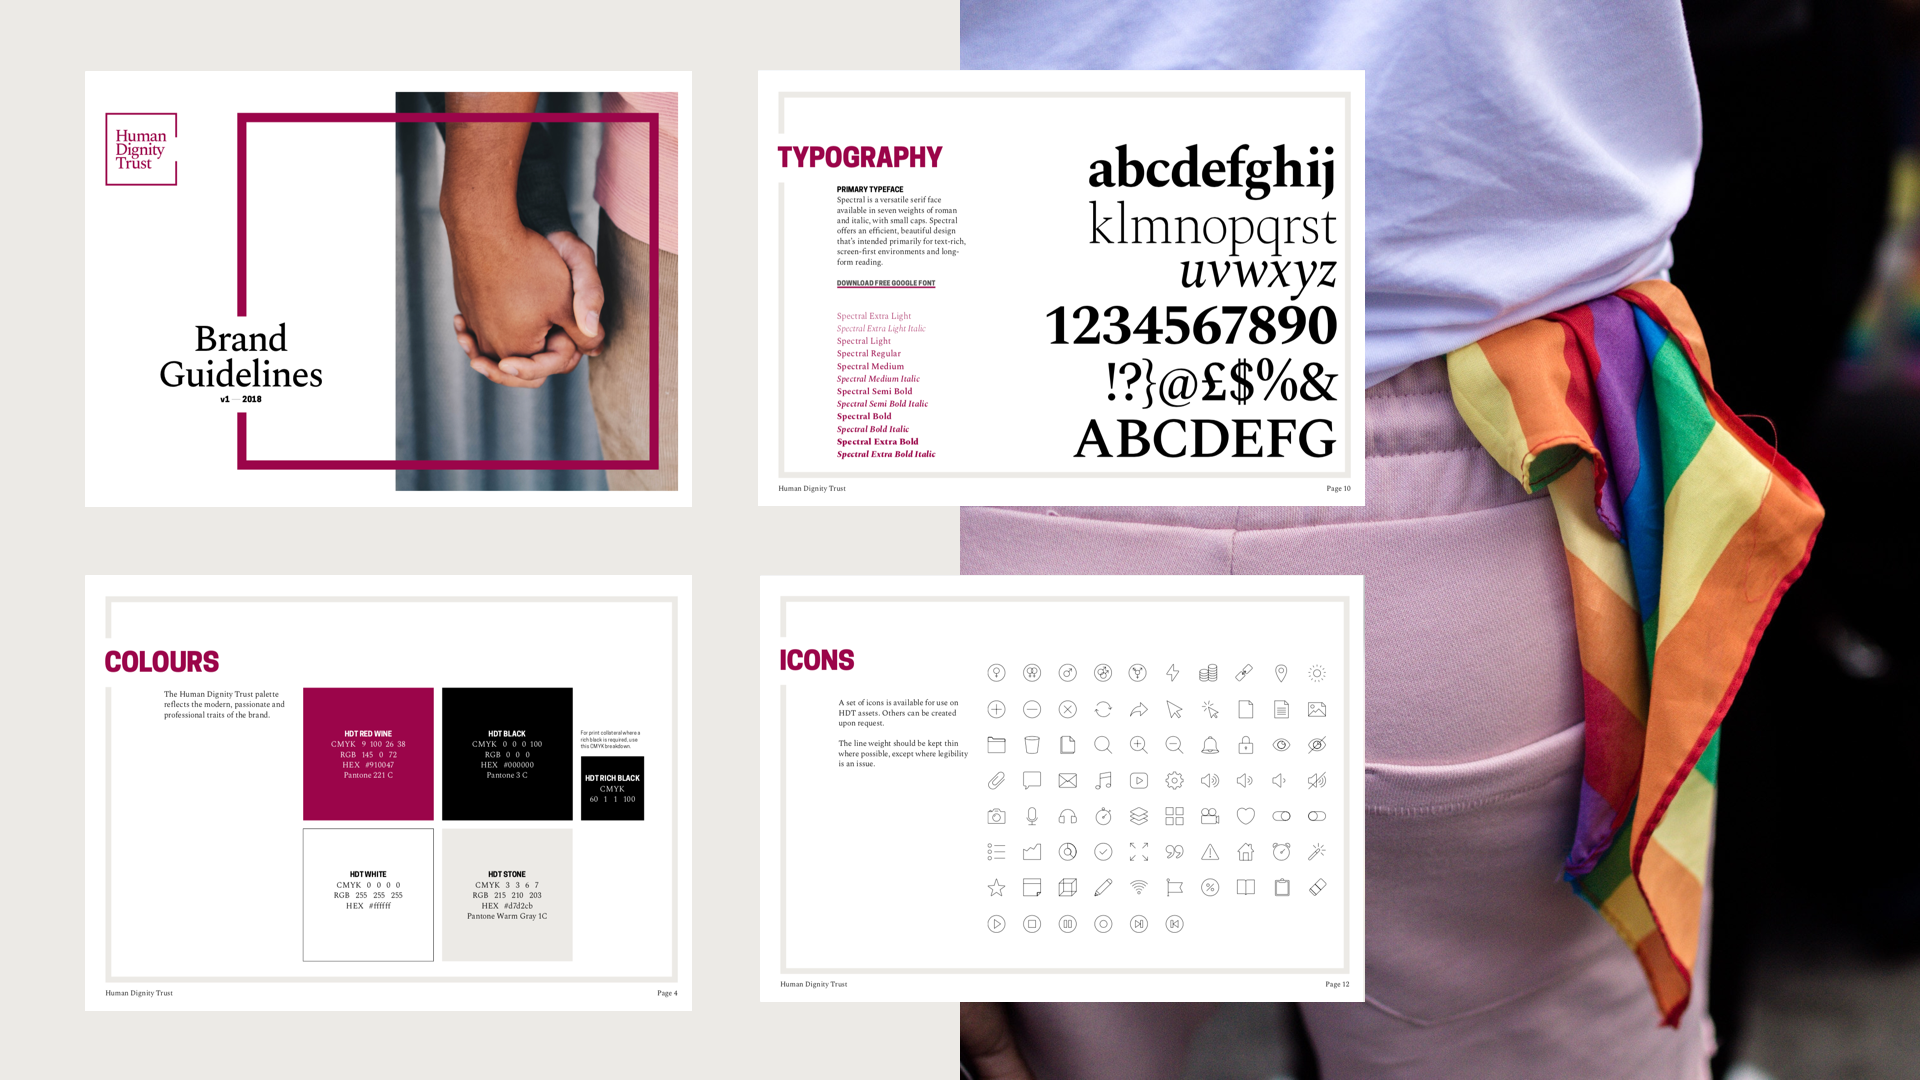 Pages from the Human Dignity Trust brand guidelines